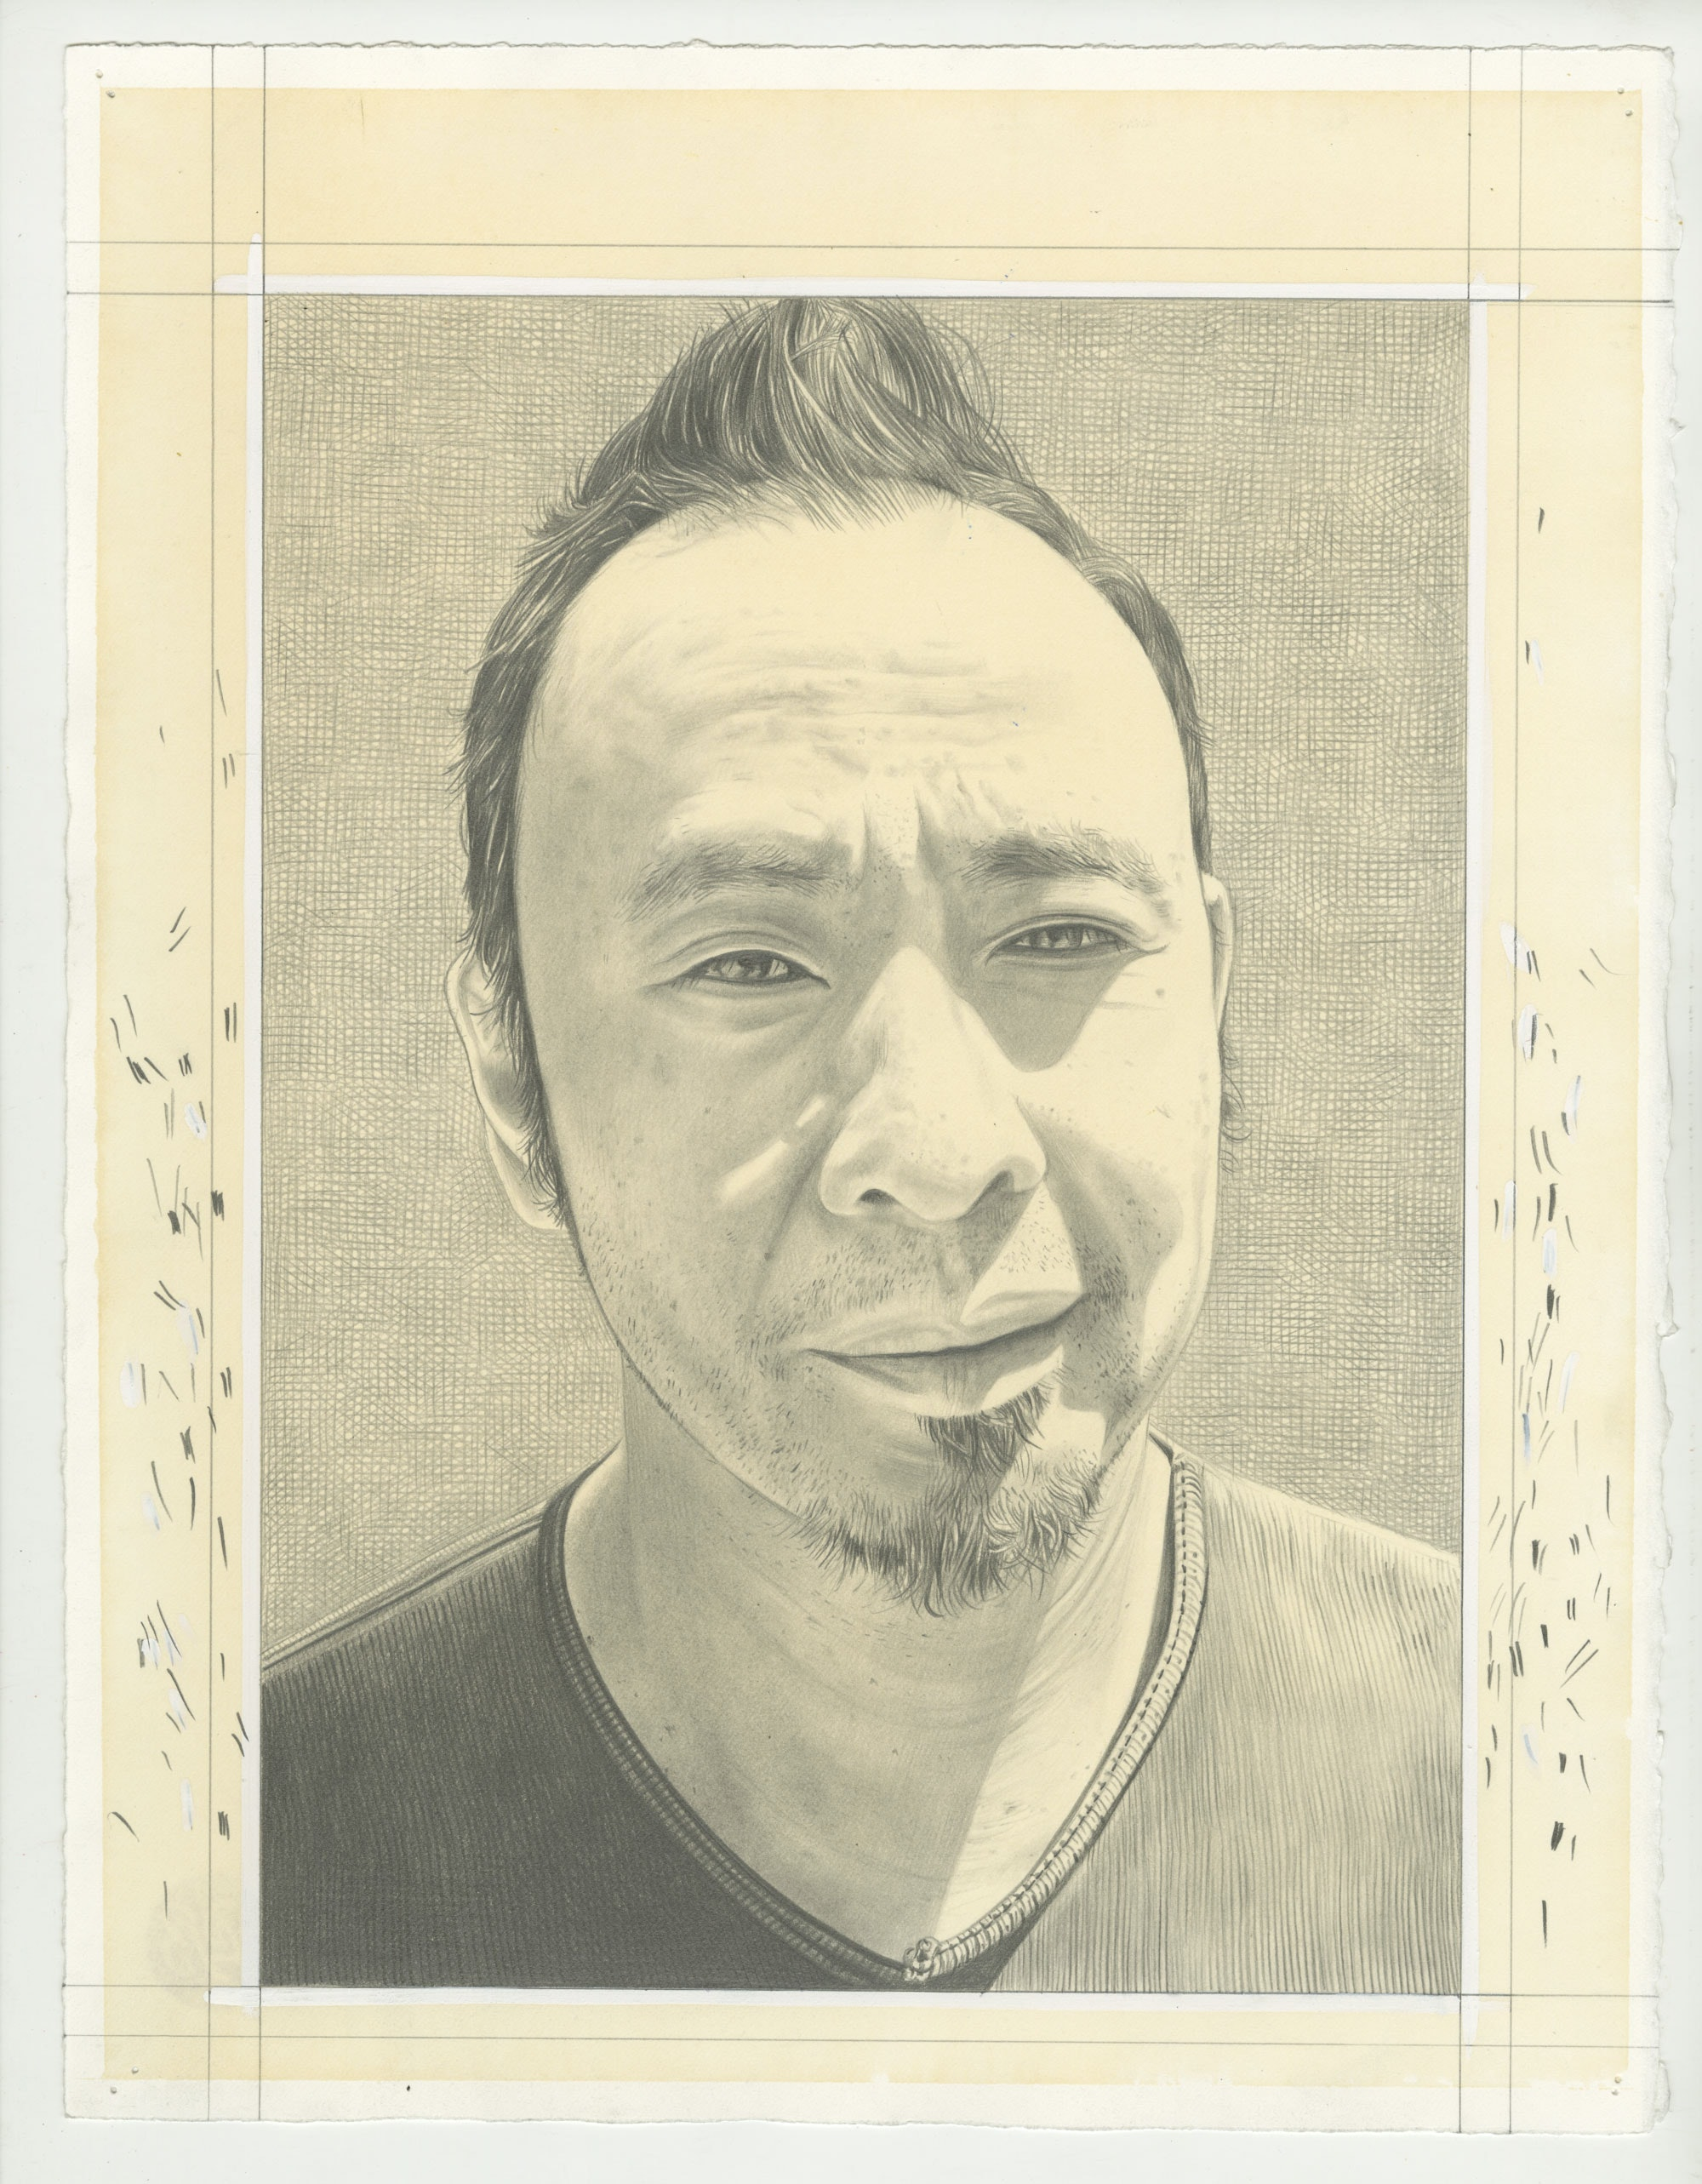 Portrait of Tomas Vu. Pencil on paper by Phong Bui.